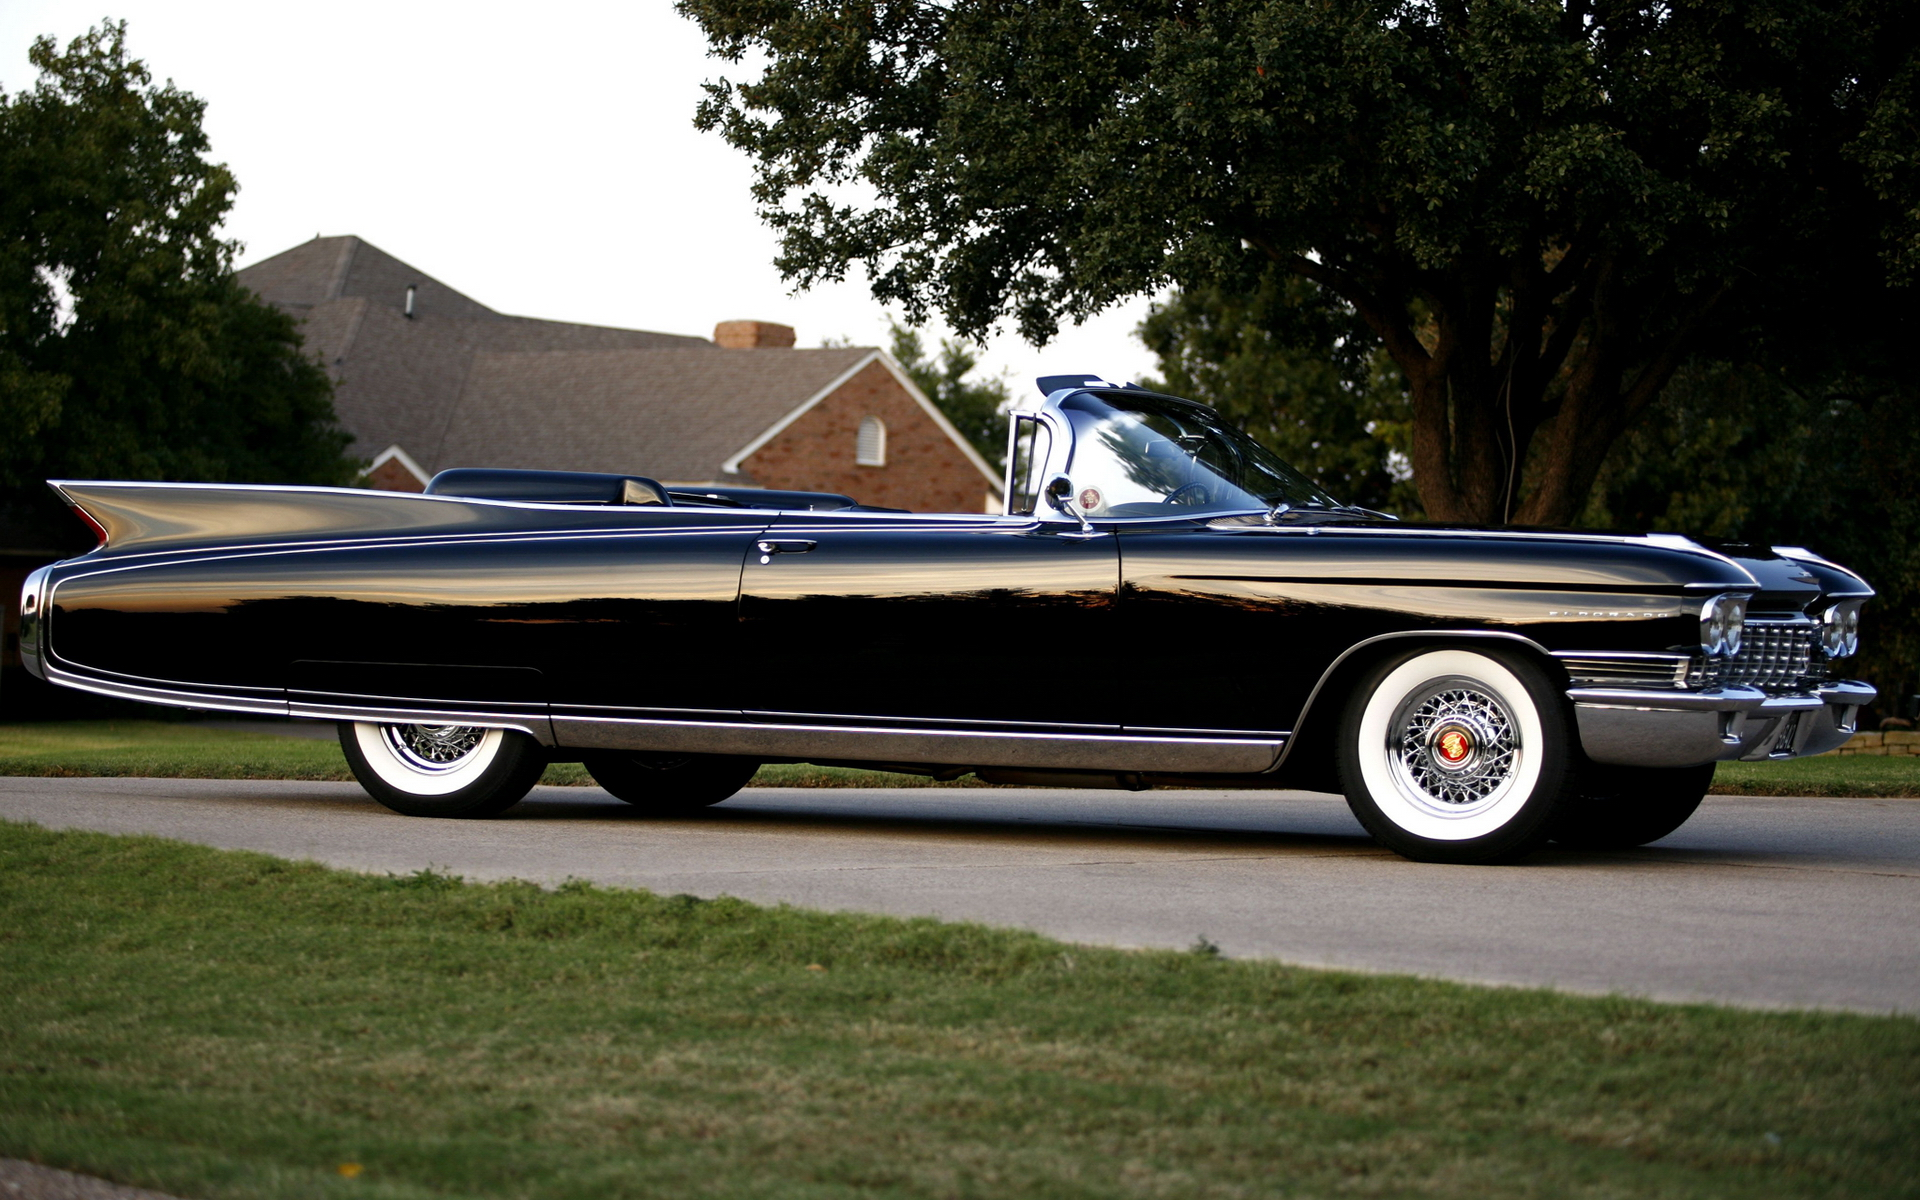 1 1960 cadillac eldorado convertible hd wallpapers for Old black and white photos for sale